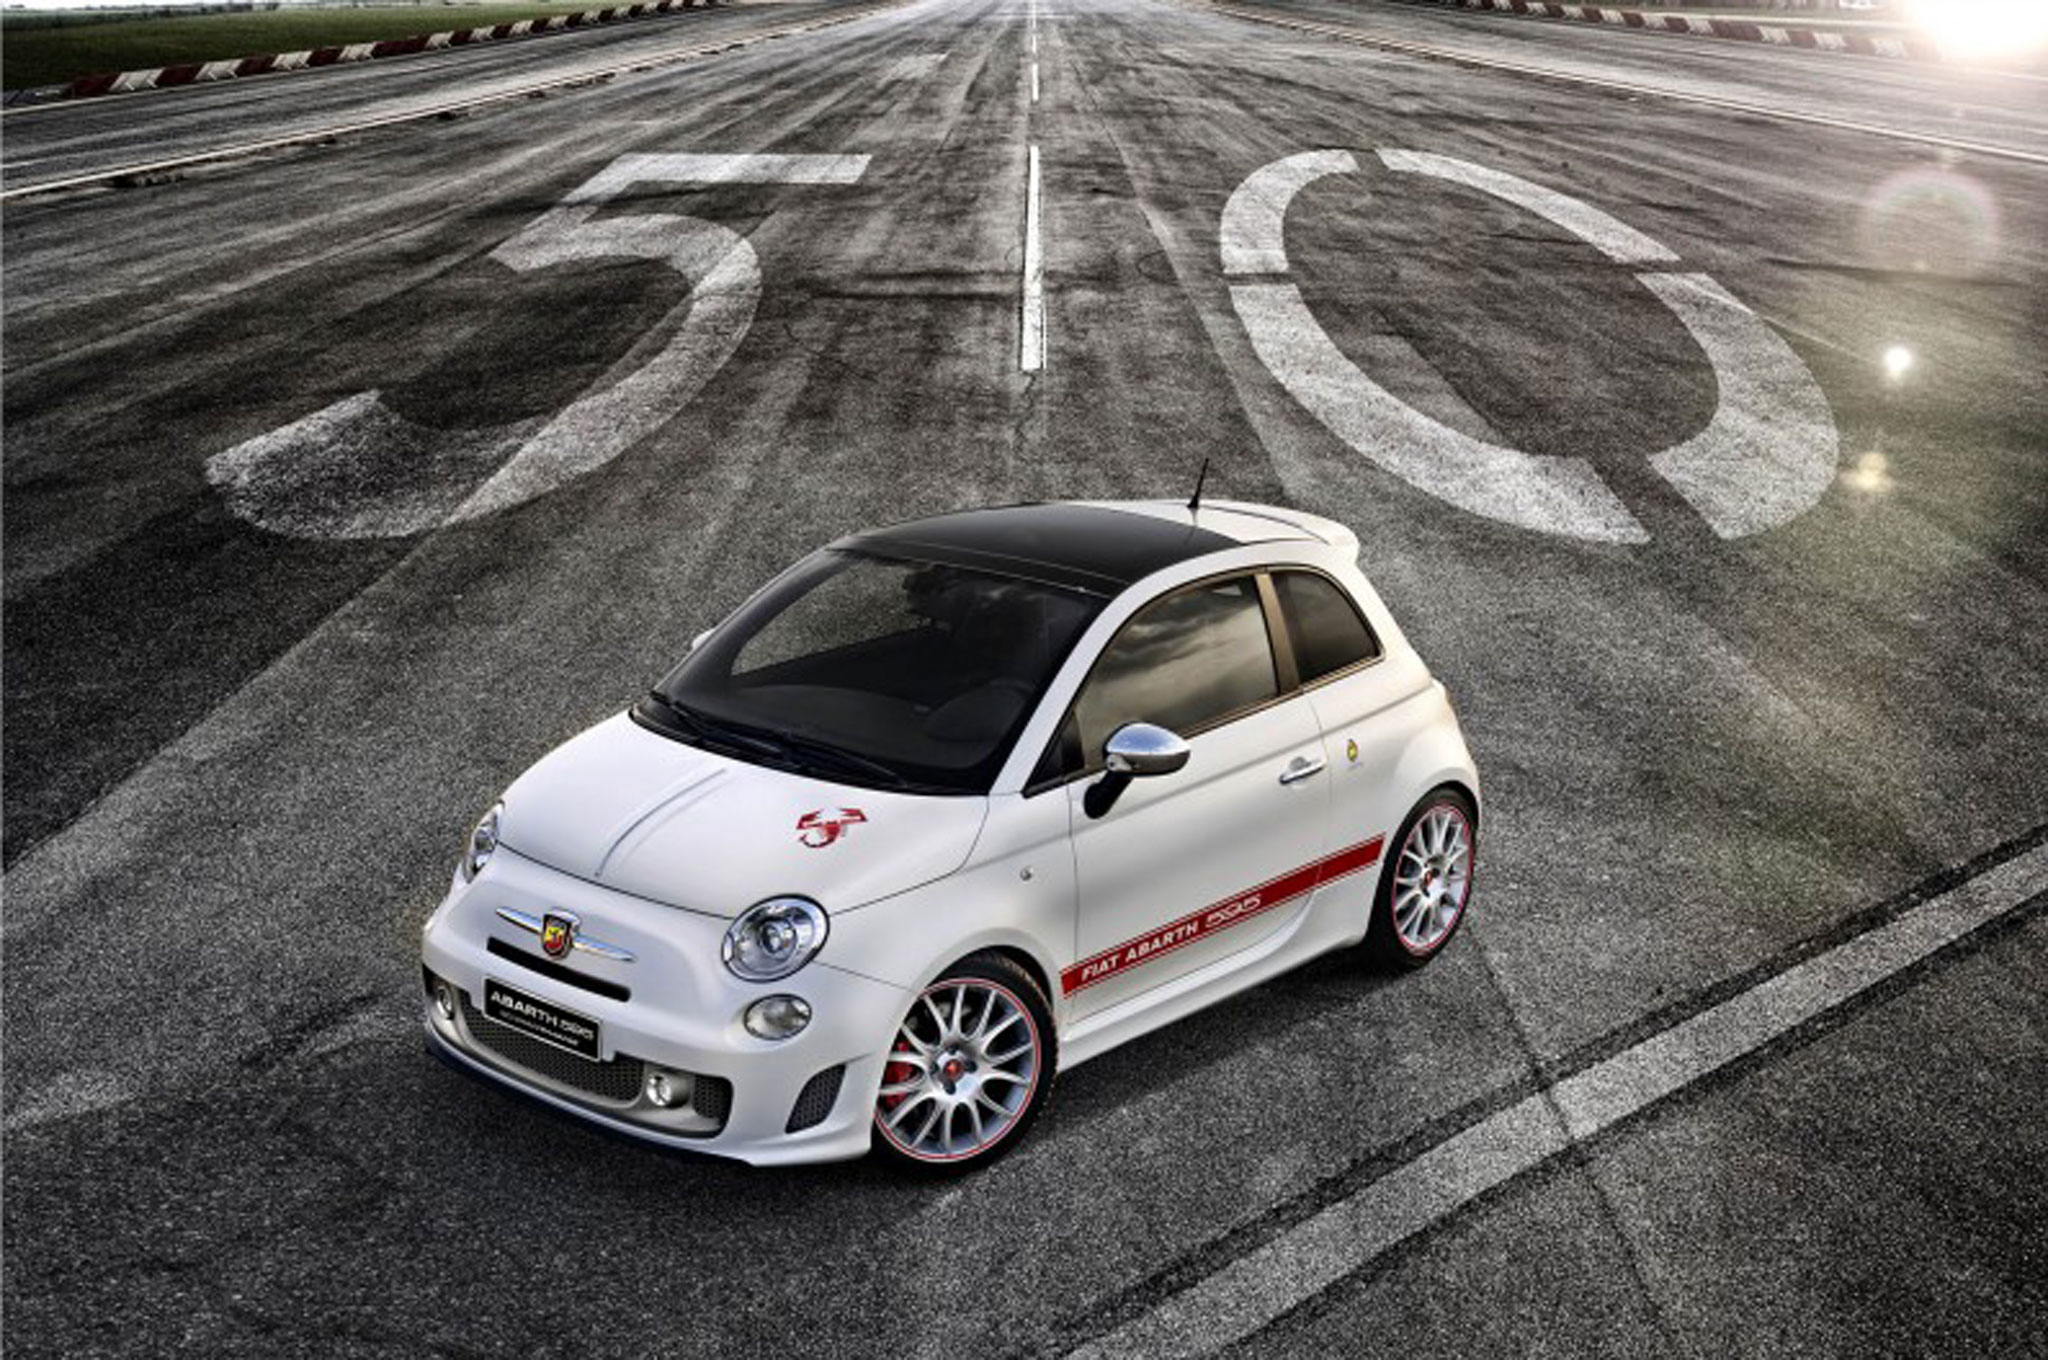 2014 Fiat 500 Abarth 595 50th Anniversary Limited Series Front Left View